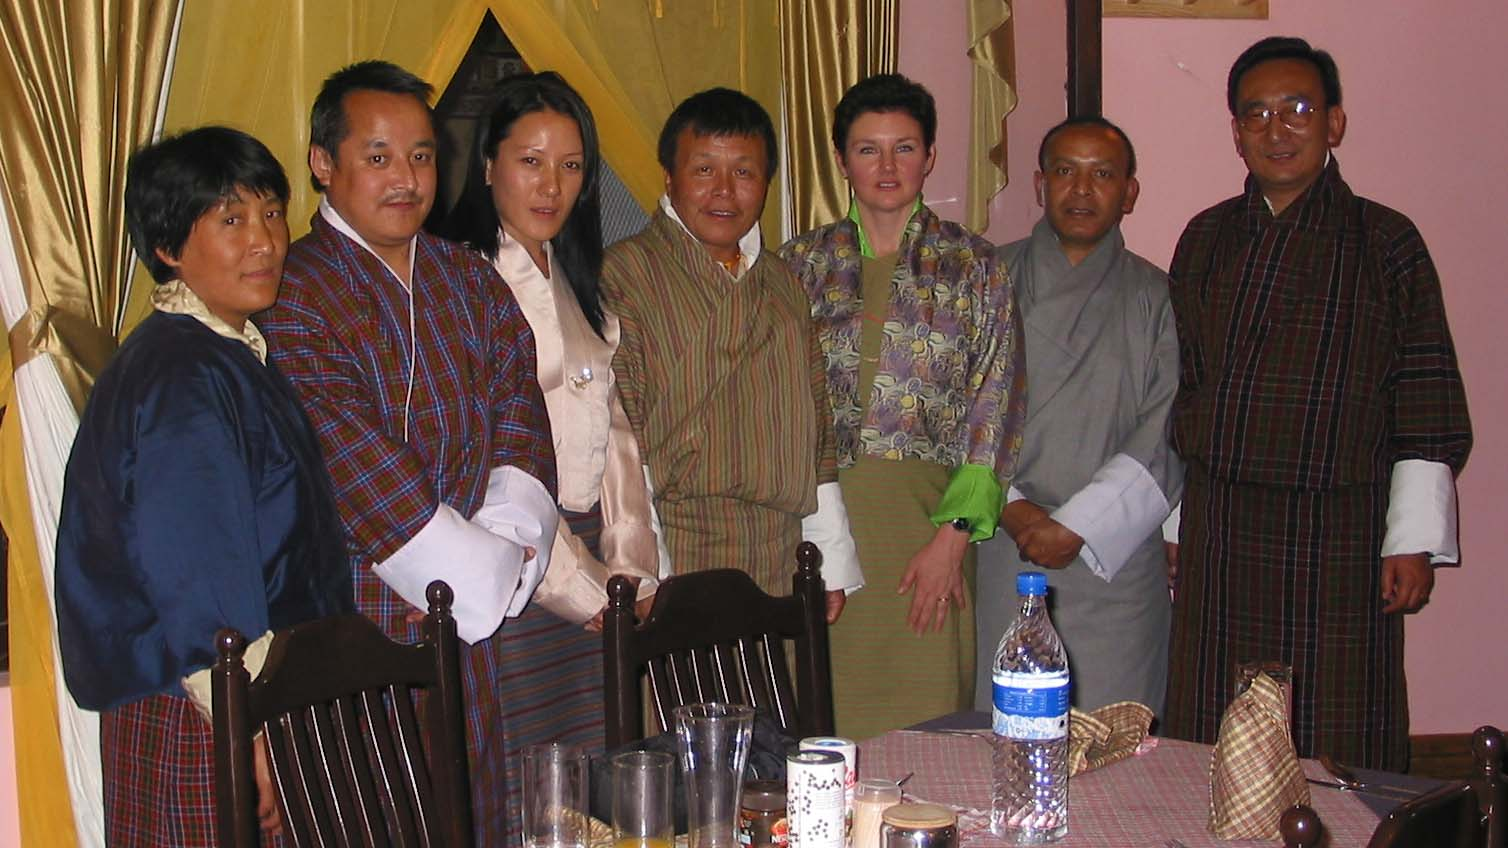 A memorable dinner in Paro, 2005